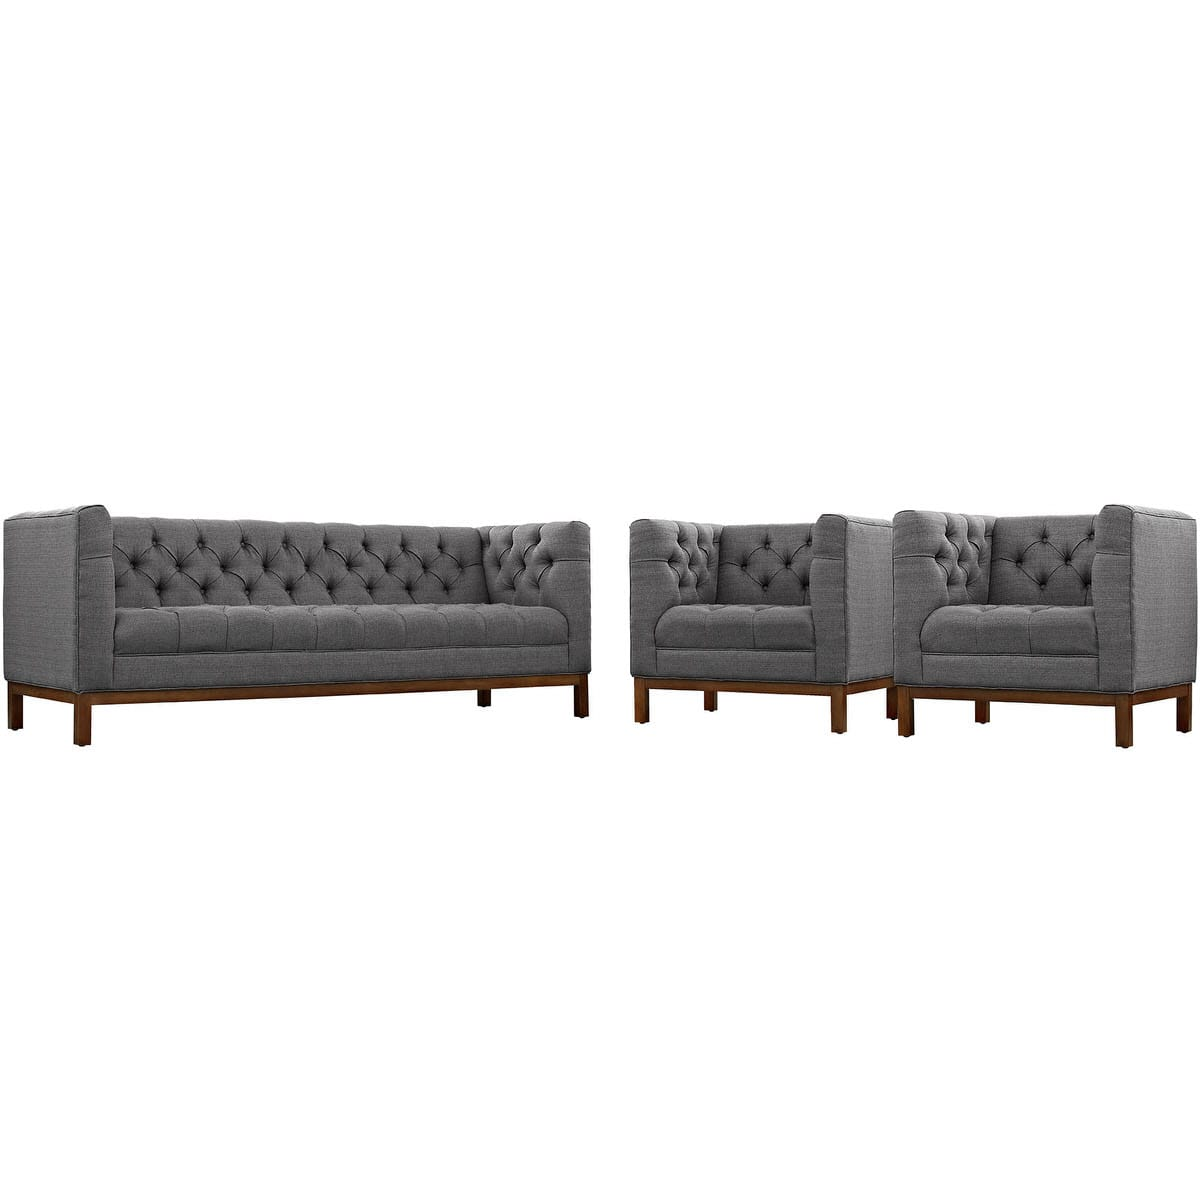 Panache Living Room Set Upholstered Fabric Set of 3 Gray by Modern ...